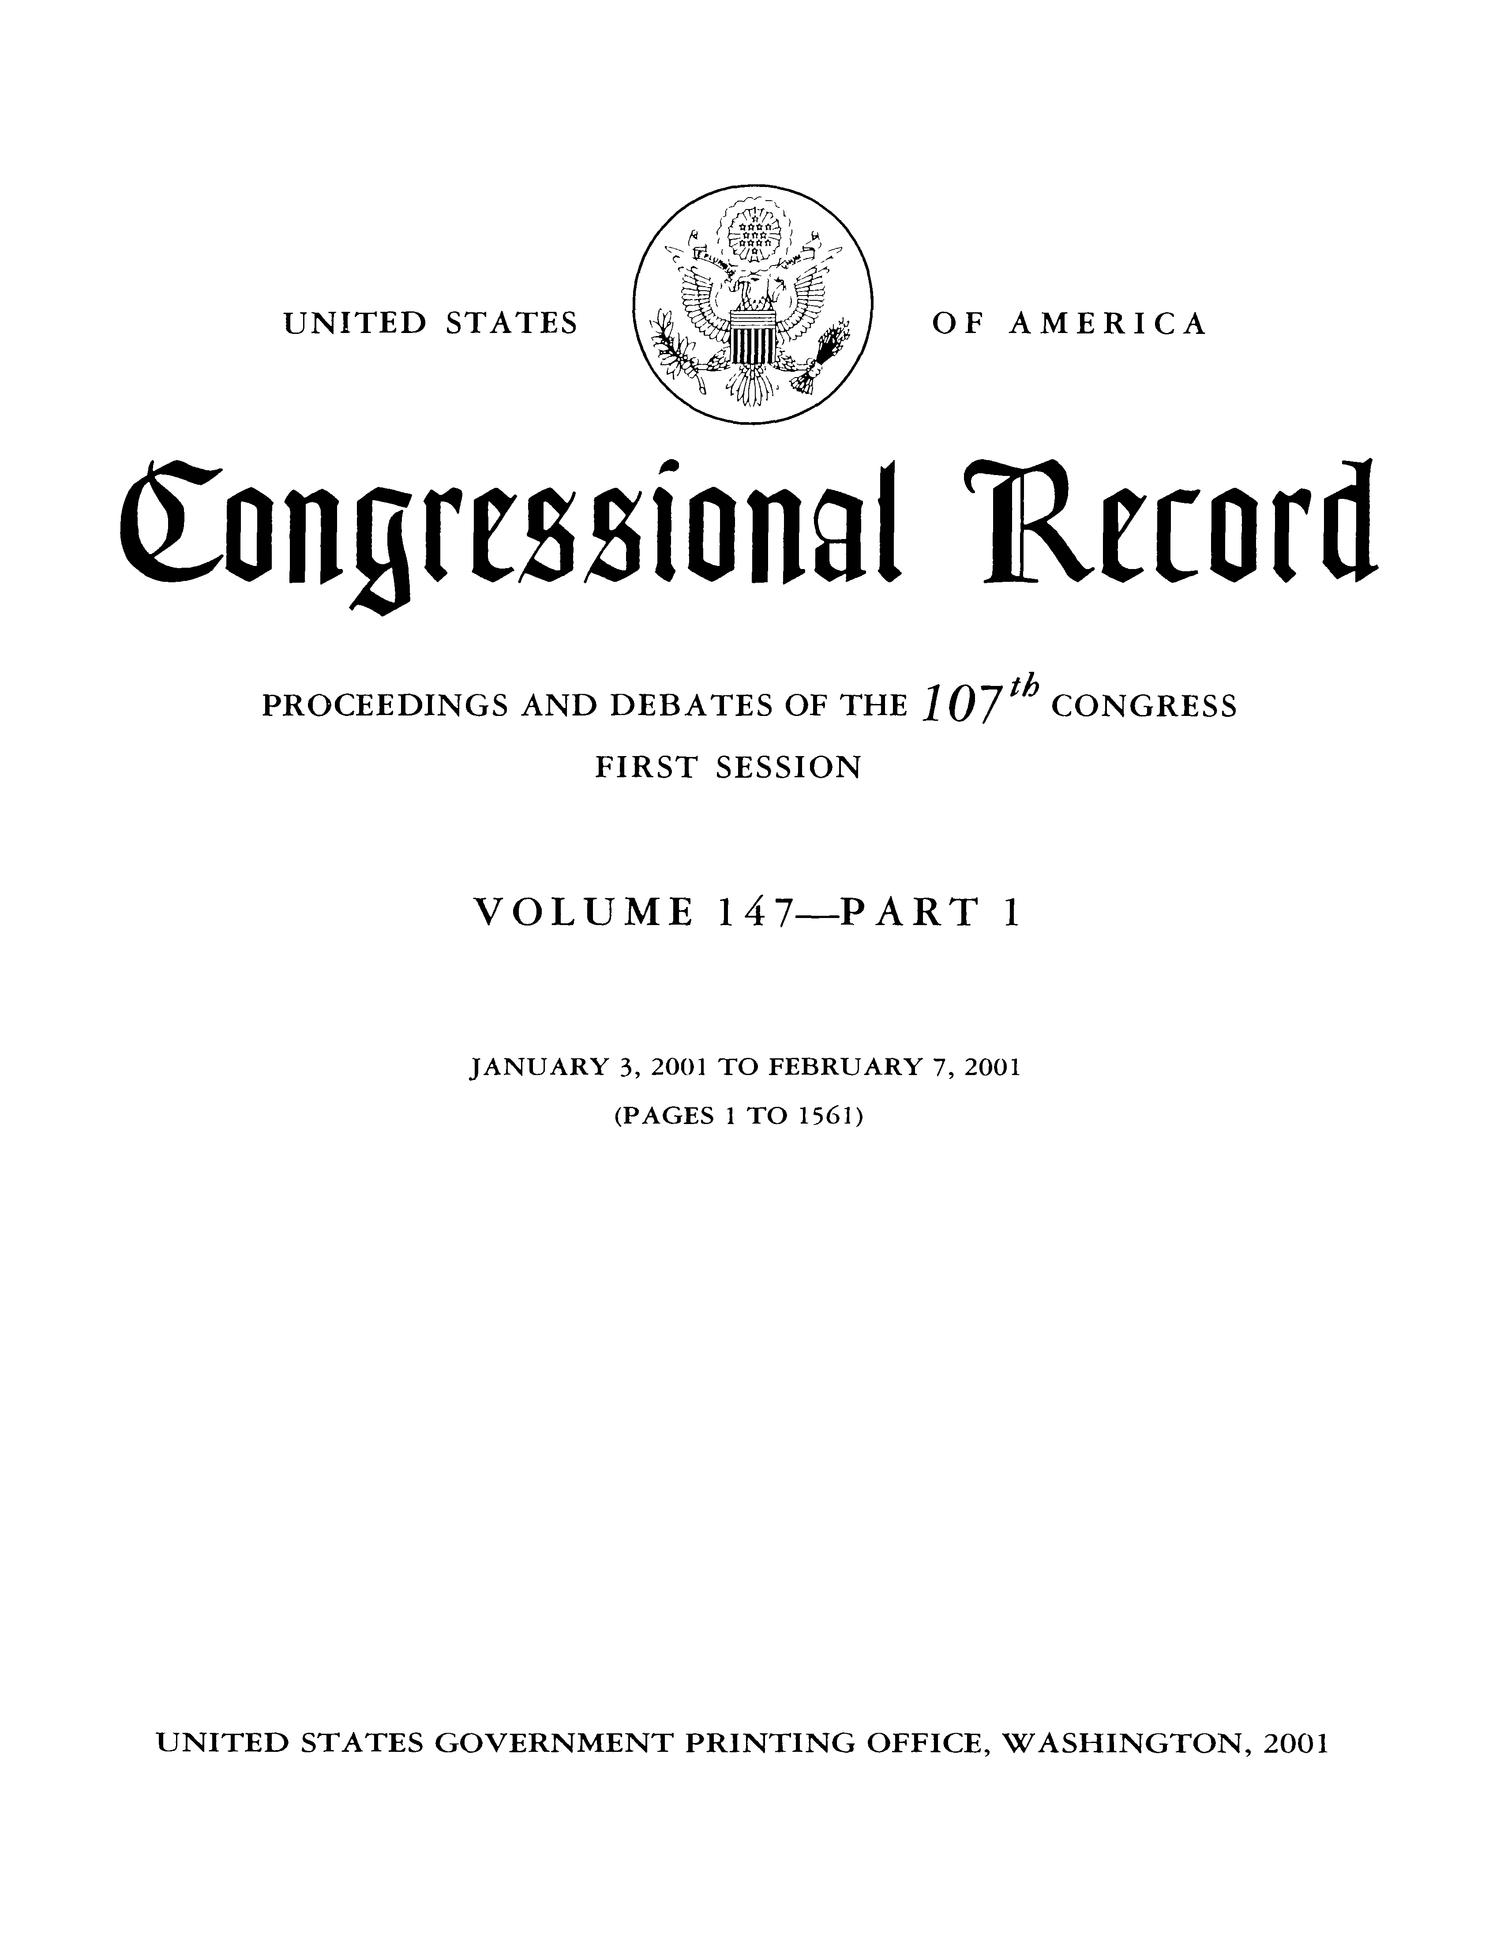 Congressional Record: Proceedings and Debates of the 107th Congress, First Session, Volume 147, Part 1                                                                                                      Title Page